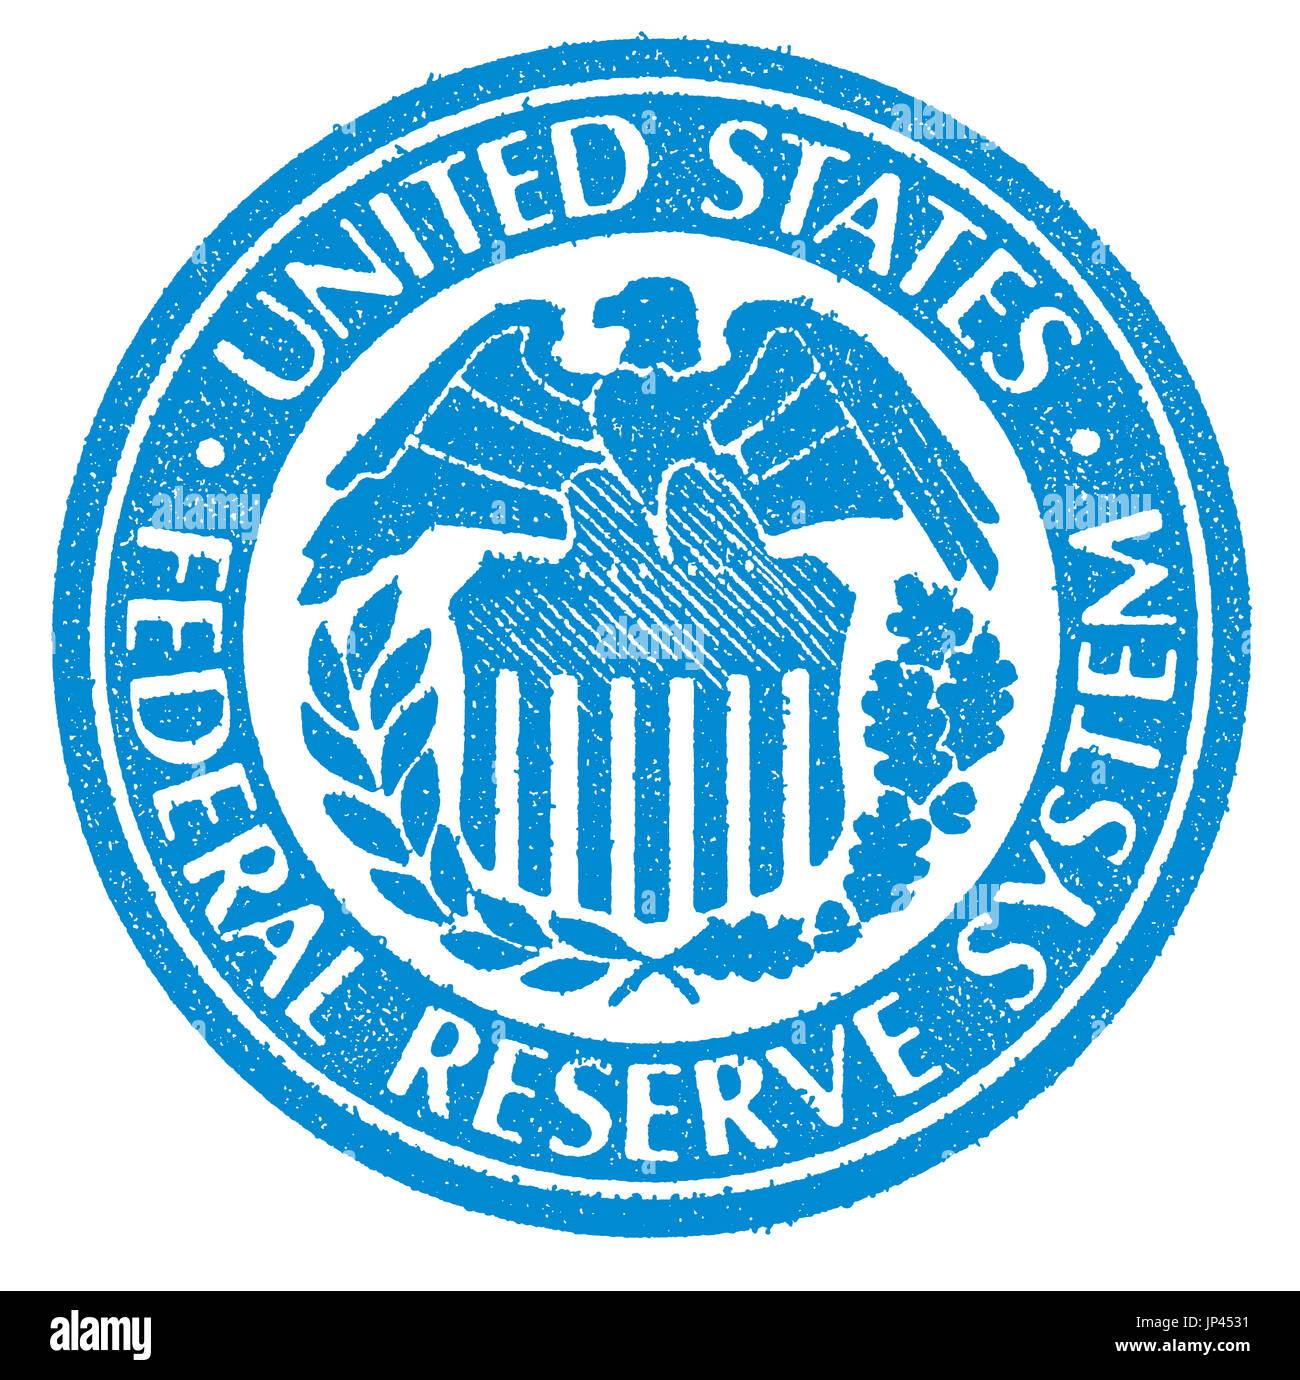 Illustrated Symbol Of The Federal Reserve System Of The Usa Stock